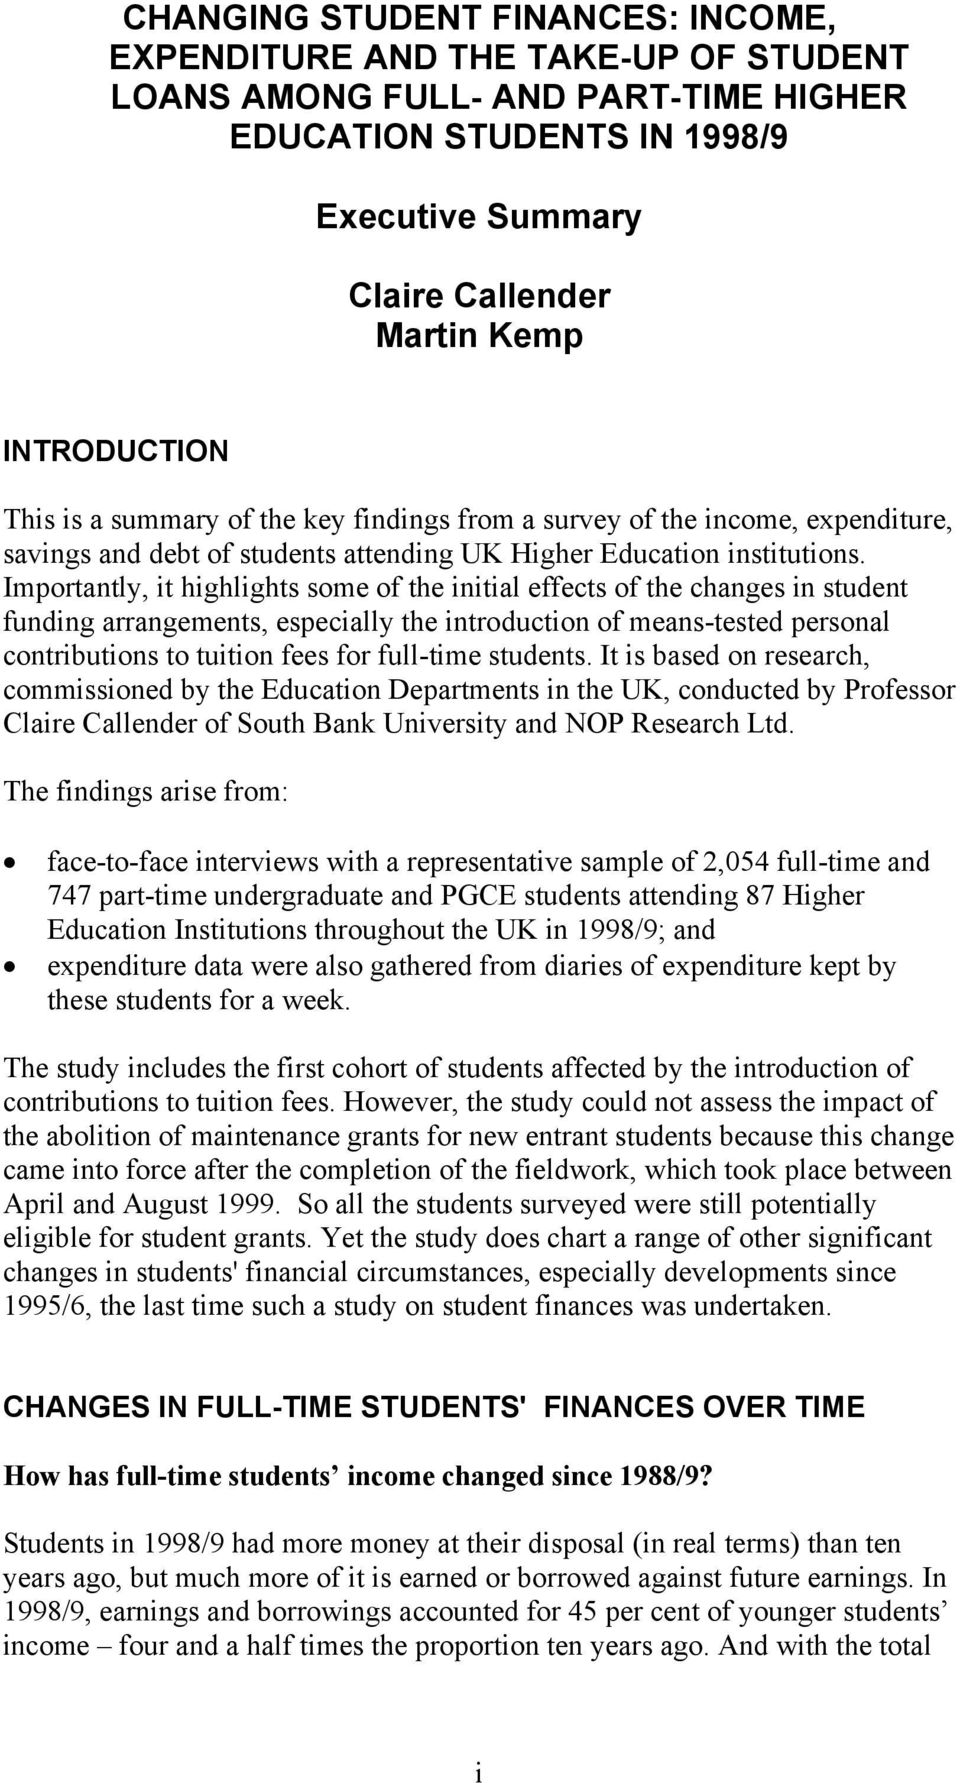 Importantly, it highlights some of the initial effects of the changes in student funding arrangements, especially the introduction of means-tested personal contributions to tuition fees for full-time